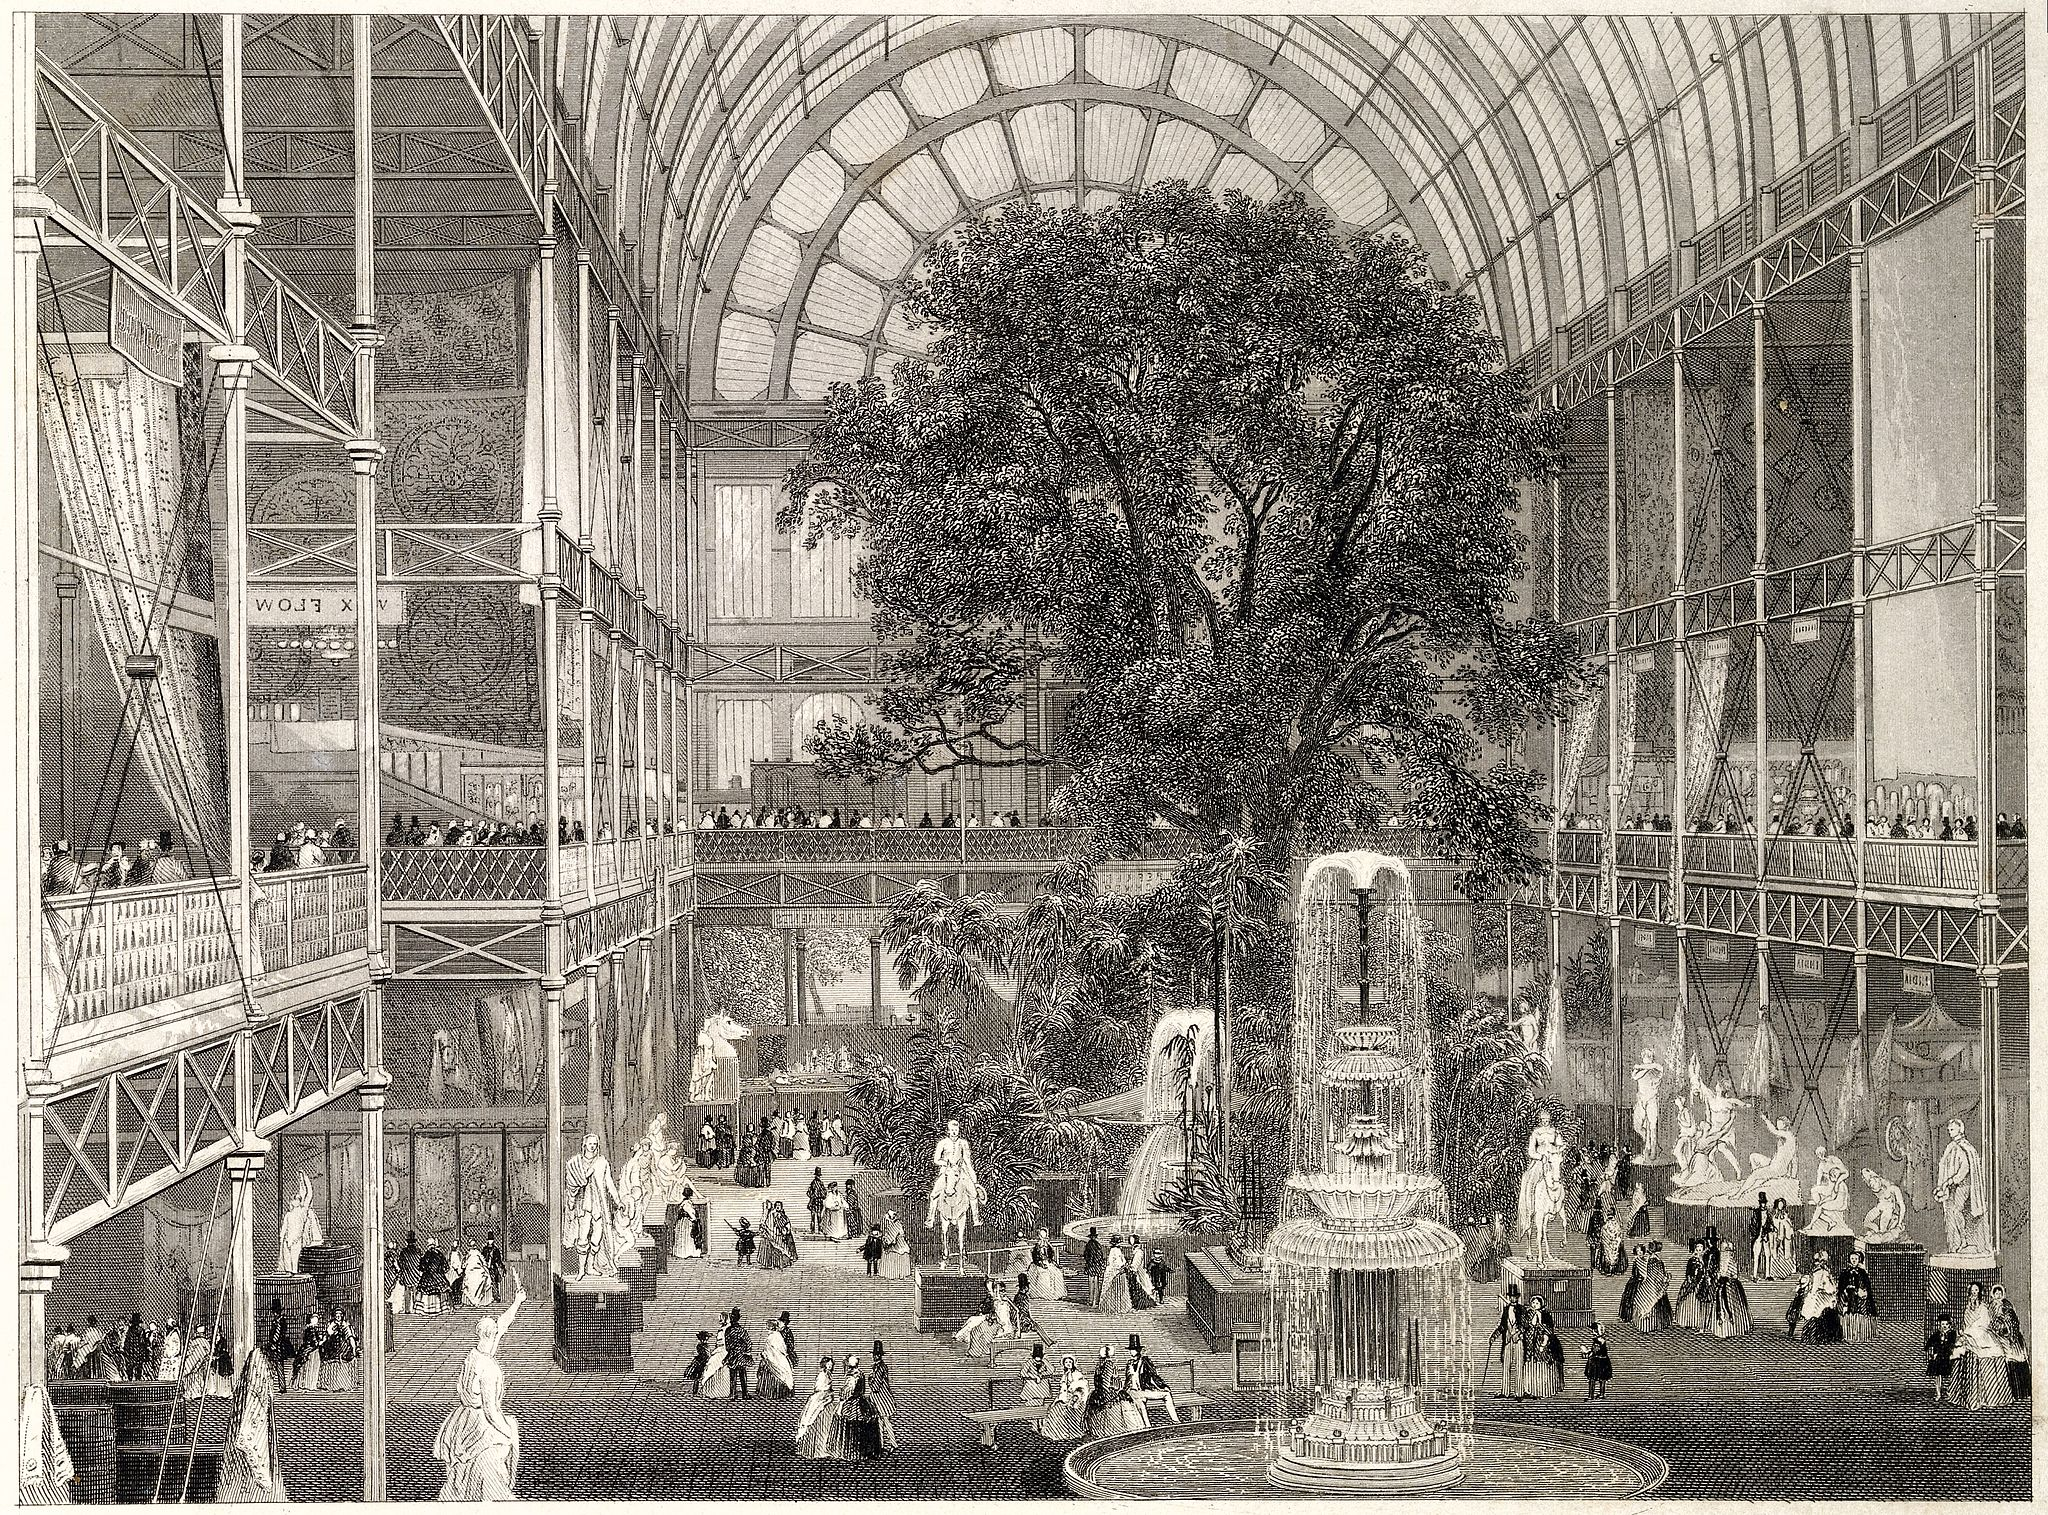 Steel_engraving_Crystal_Palace_1851_exhibition_Wellcome_L0023919